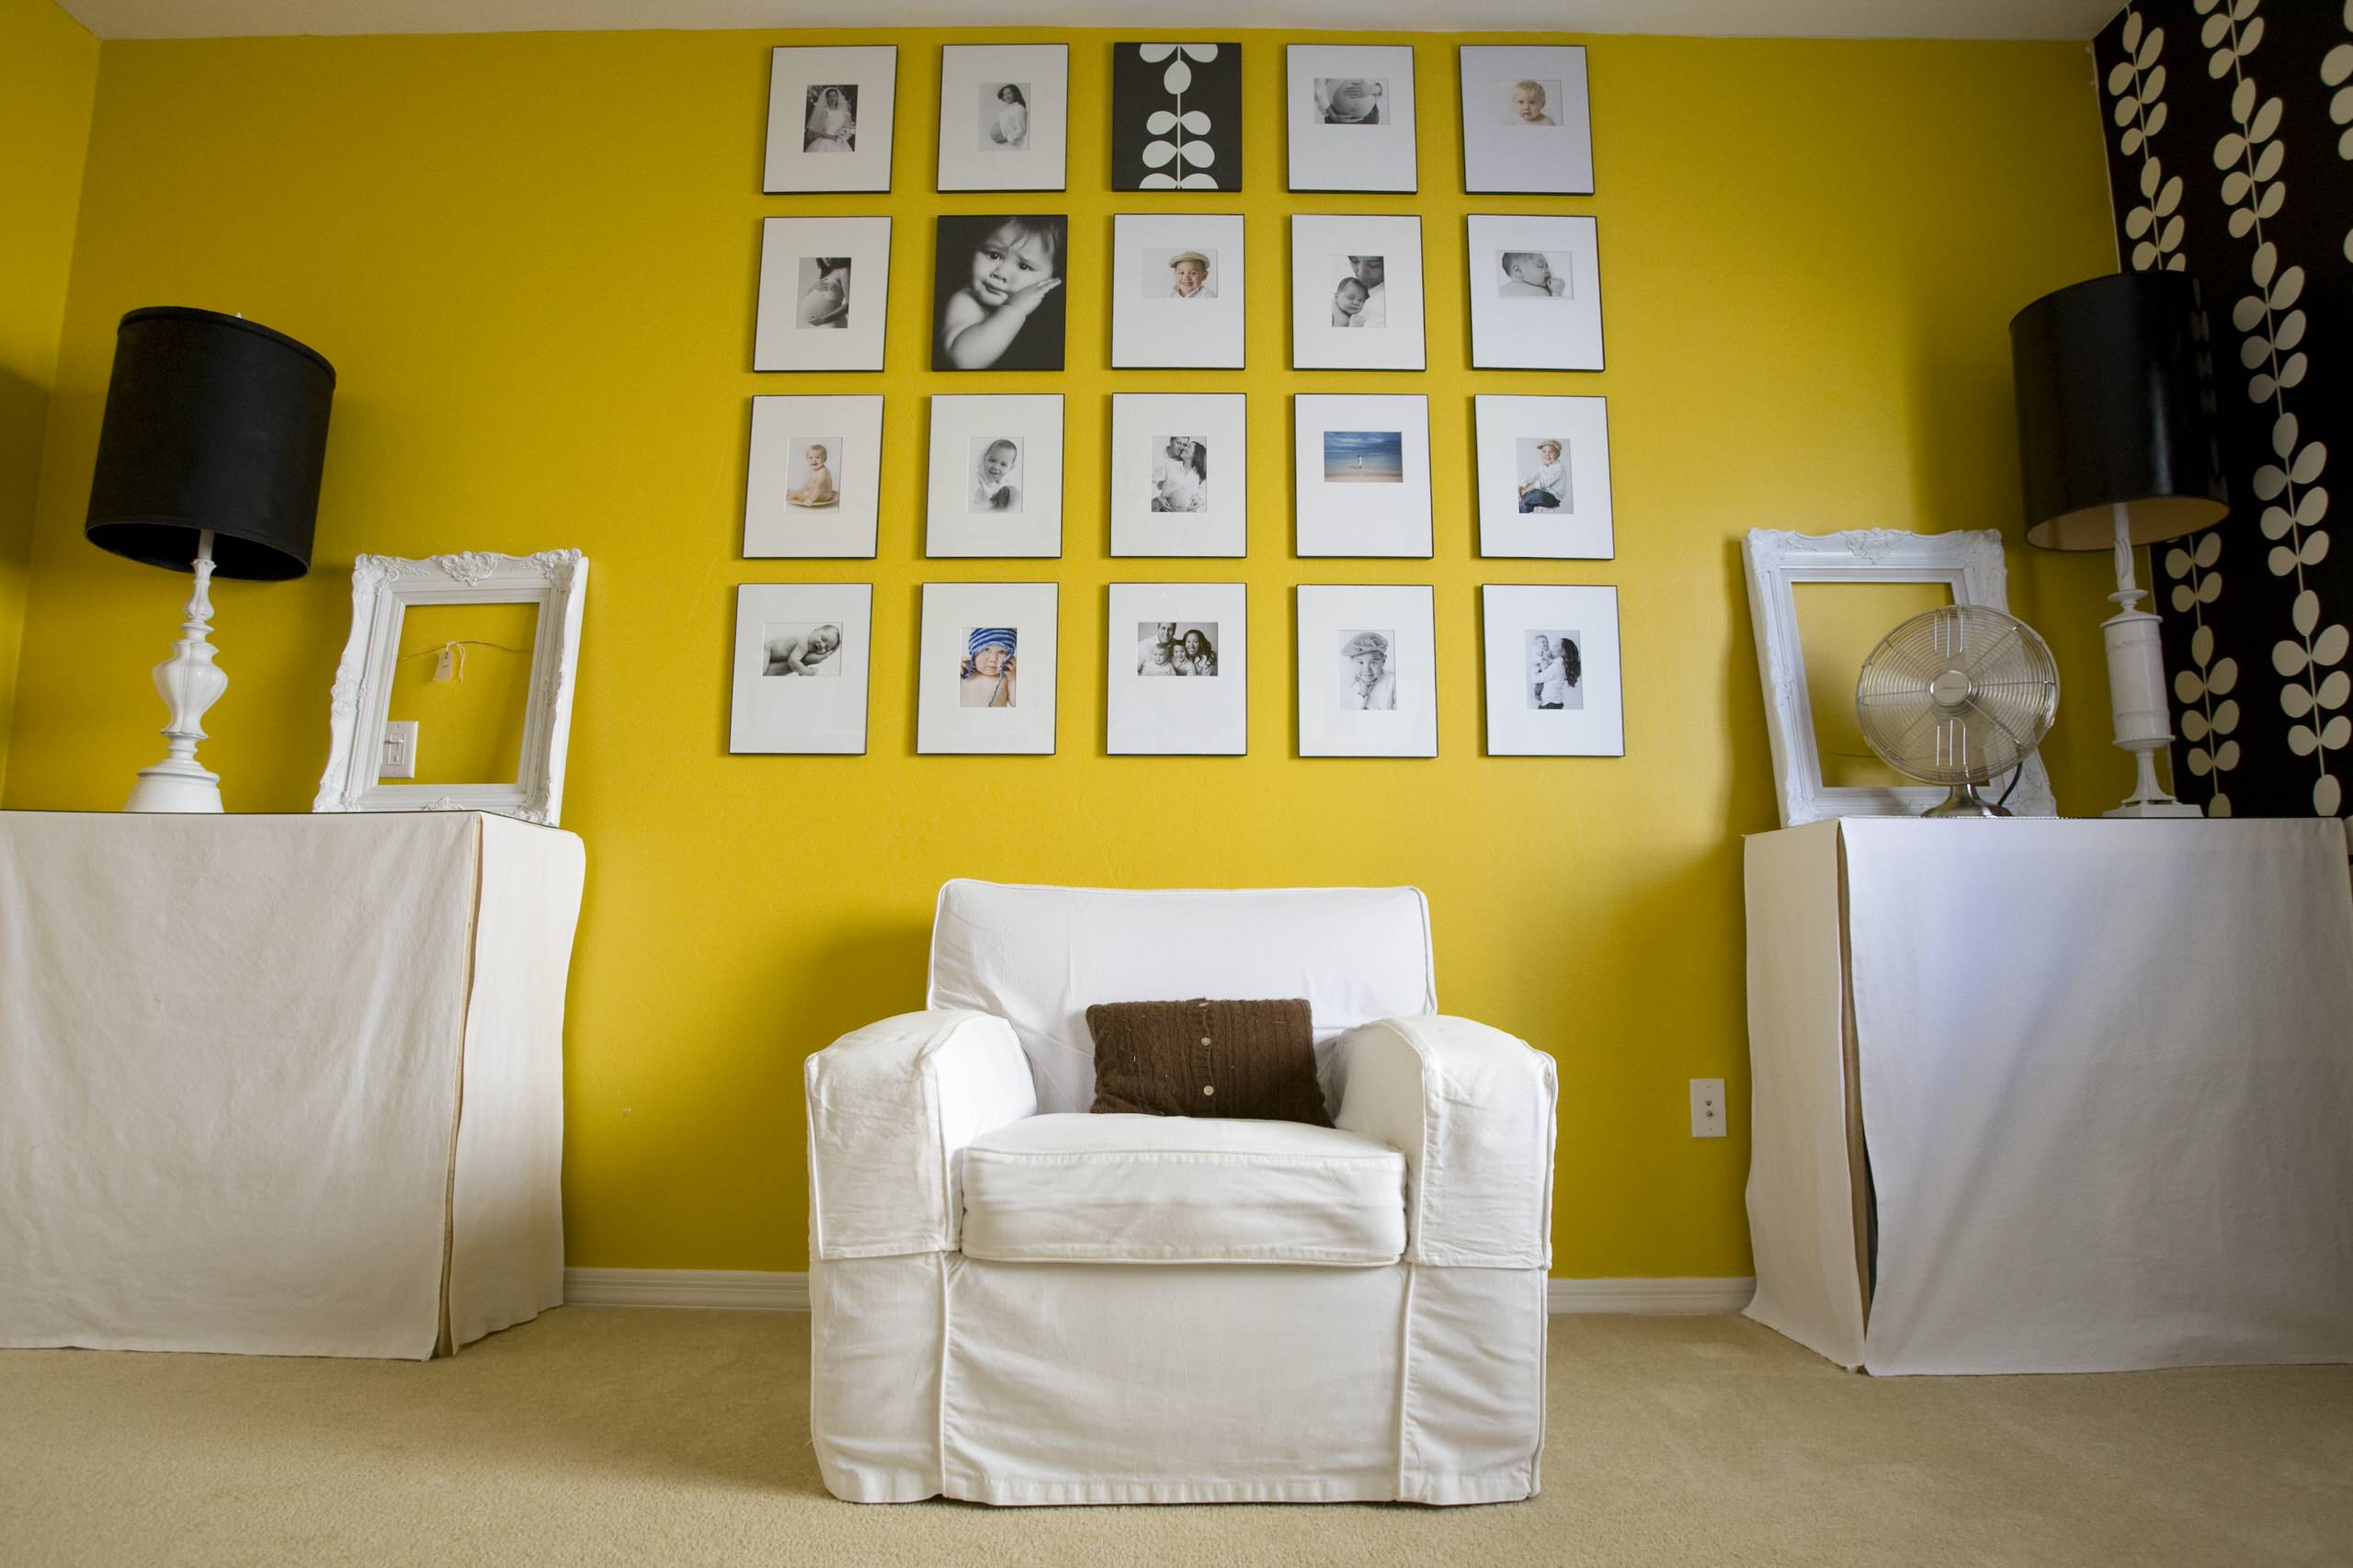 Drum Lamp Shades And End Tables With Photo Collage Ideas For Gallery Wall In Home Office Plus Slipcovers Armchair Also Table Fan With Wallcoverings And Yellow Walls